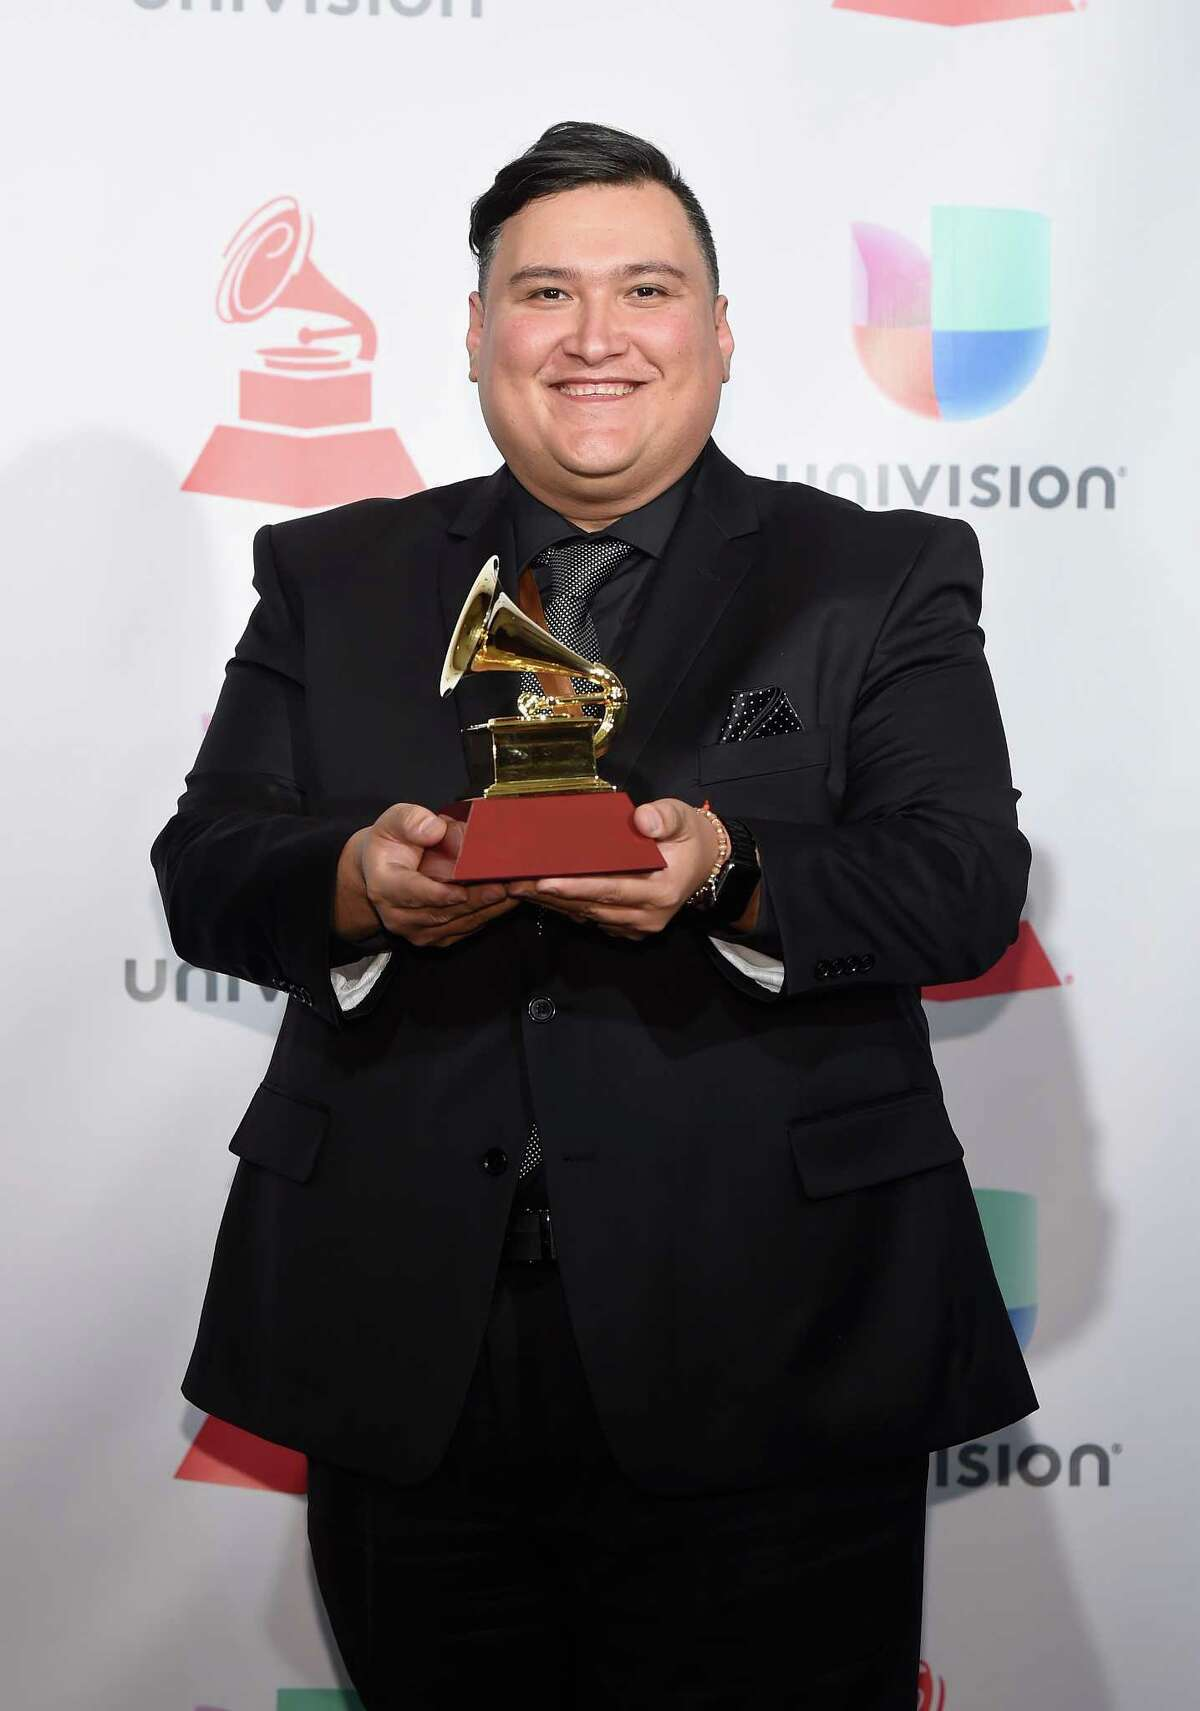 LAS VEGAS, NV - NOVEMBER 16: Juan Trevino poses in the press room during The 18th Annual Latin Grammy Awards at MGM Grand Garden Arena on November 16, 2017 in Las Vegas, Nevada.